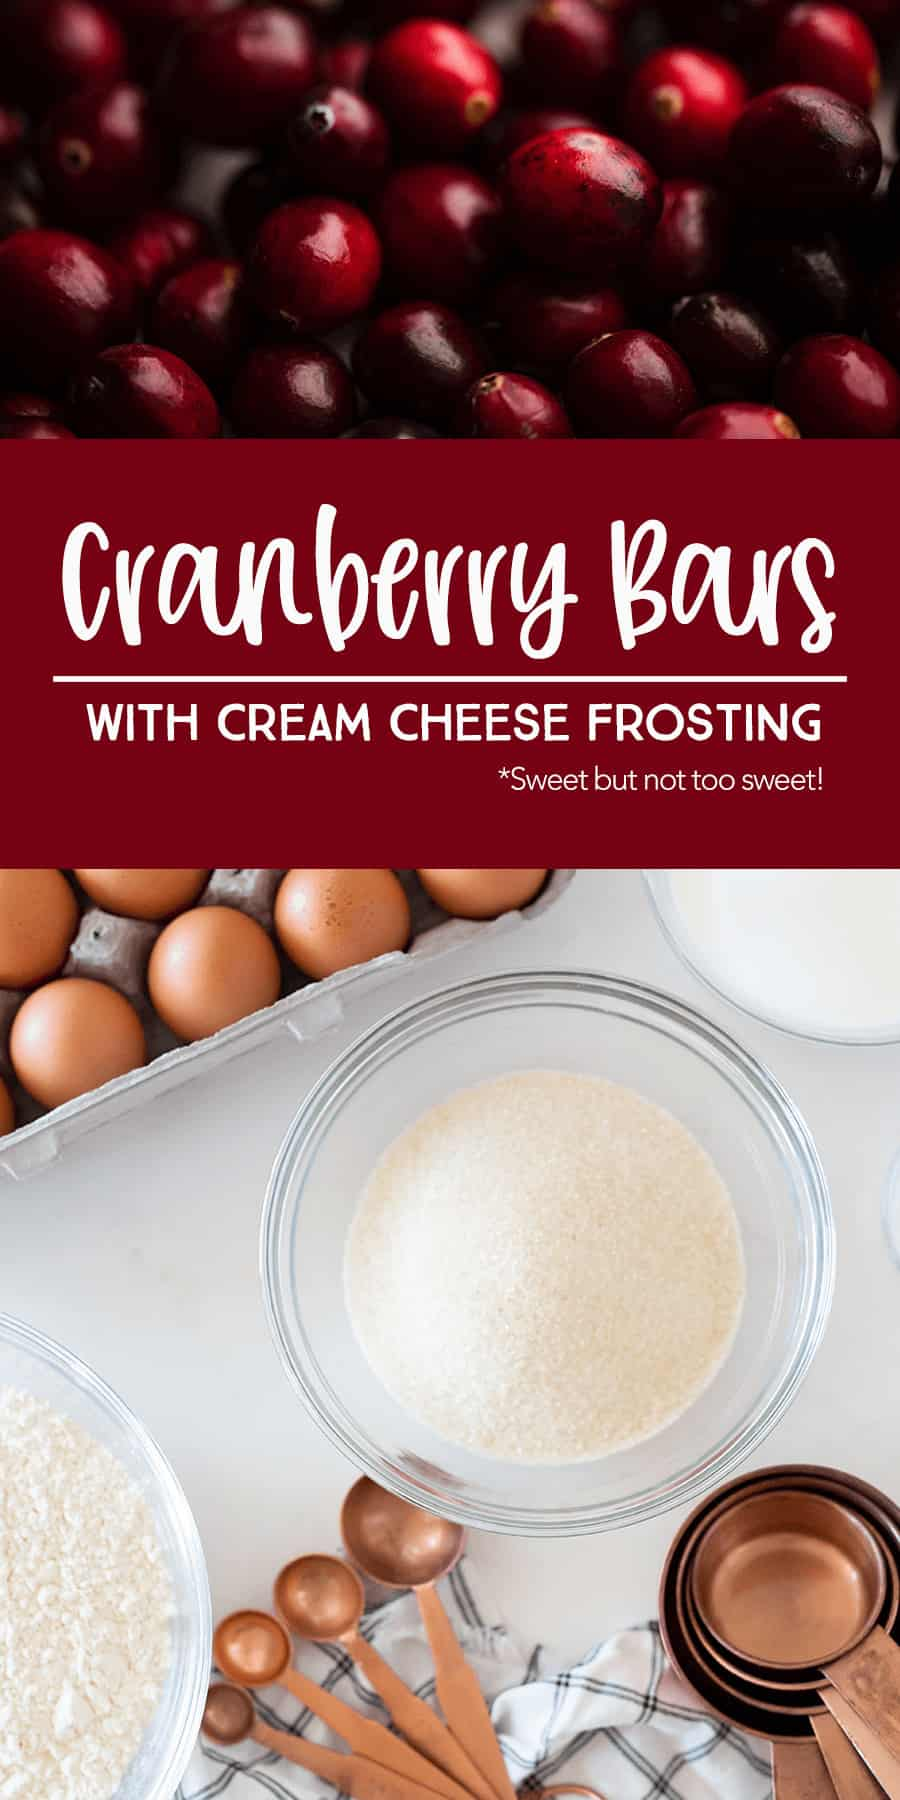 Ingredients to make Cranberry Bars with cream cheese frosting